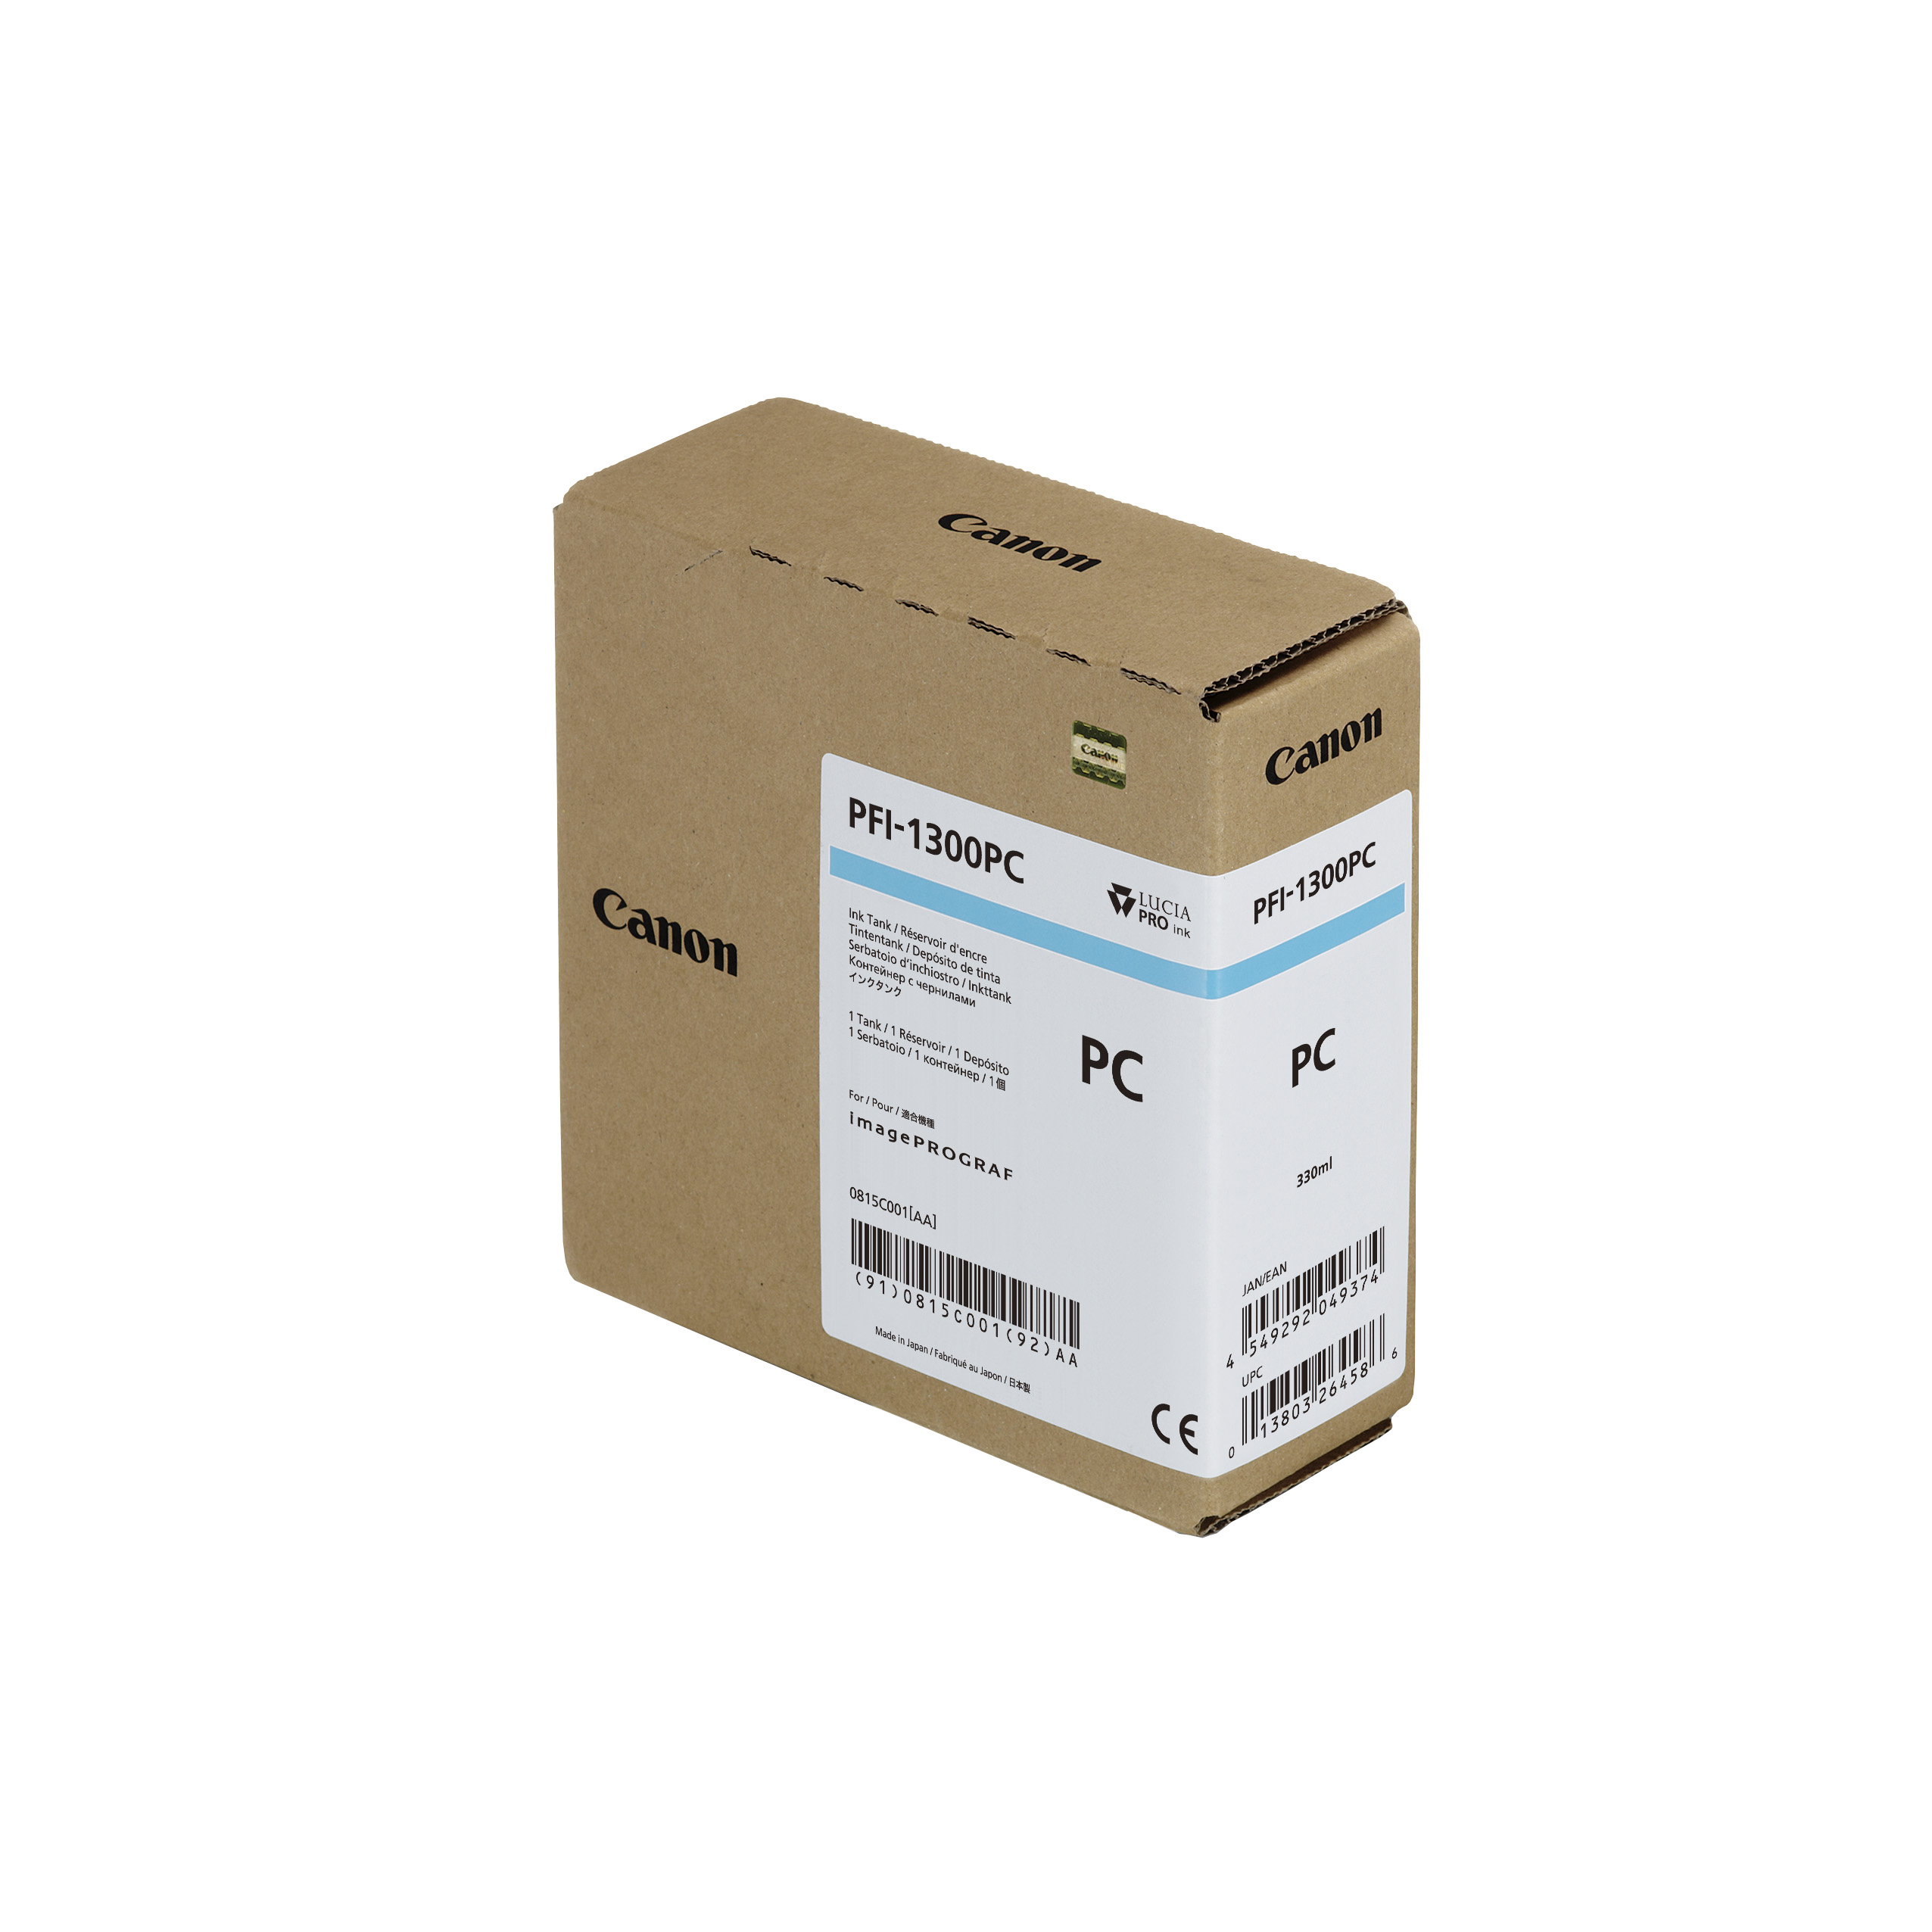 Canon PFI-1300PC Photo Cyan Ink Tank - 3300ml Cartridge - for Canon PRO-2000, PRO-4000, PRO-4000S & PRO-6000S Printer - 0814C001AA - next day delivery from GDS Graphic Design Supplies Ltd